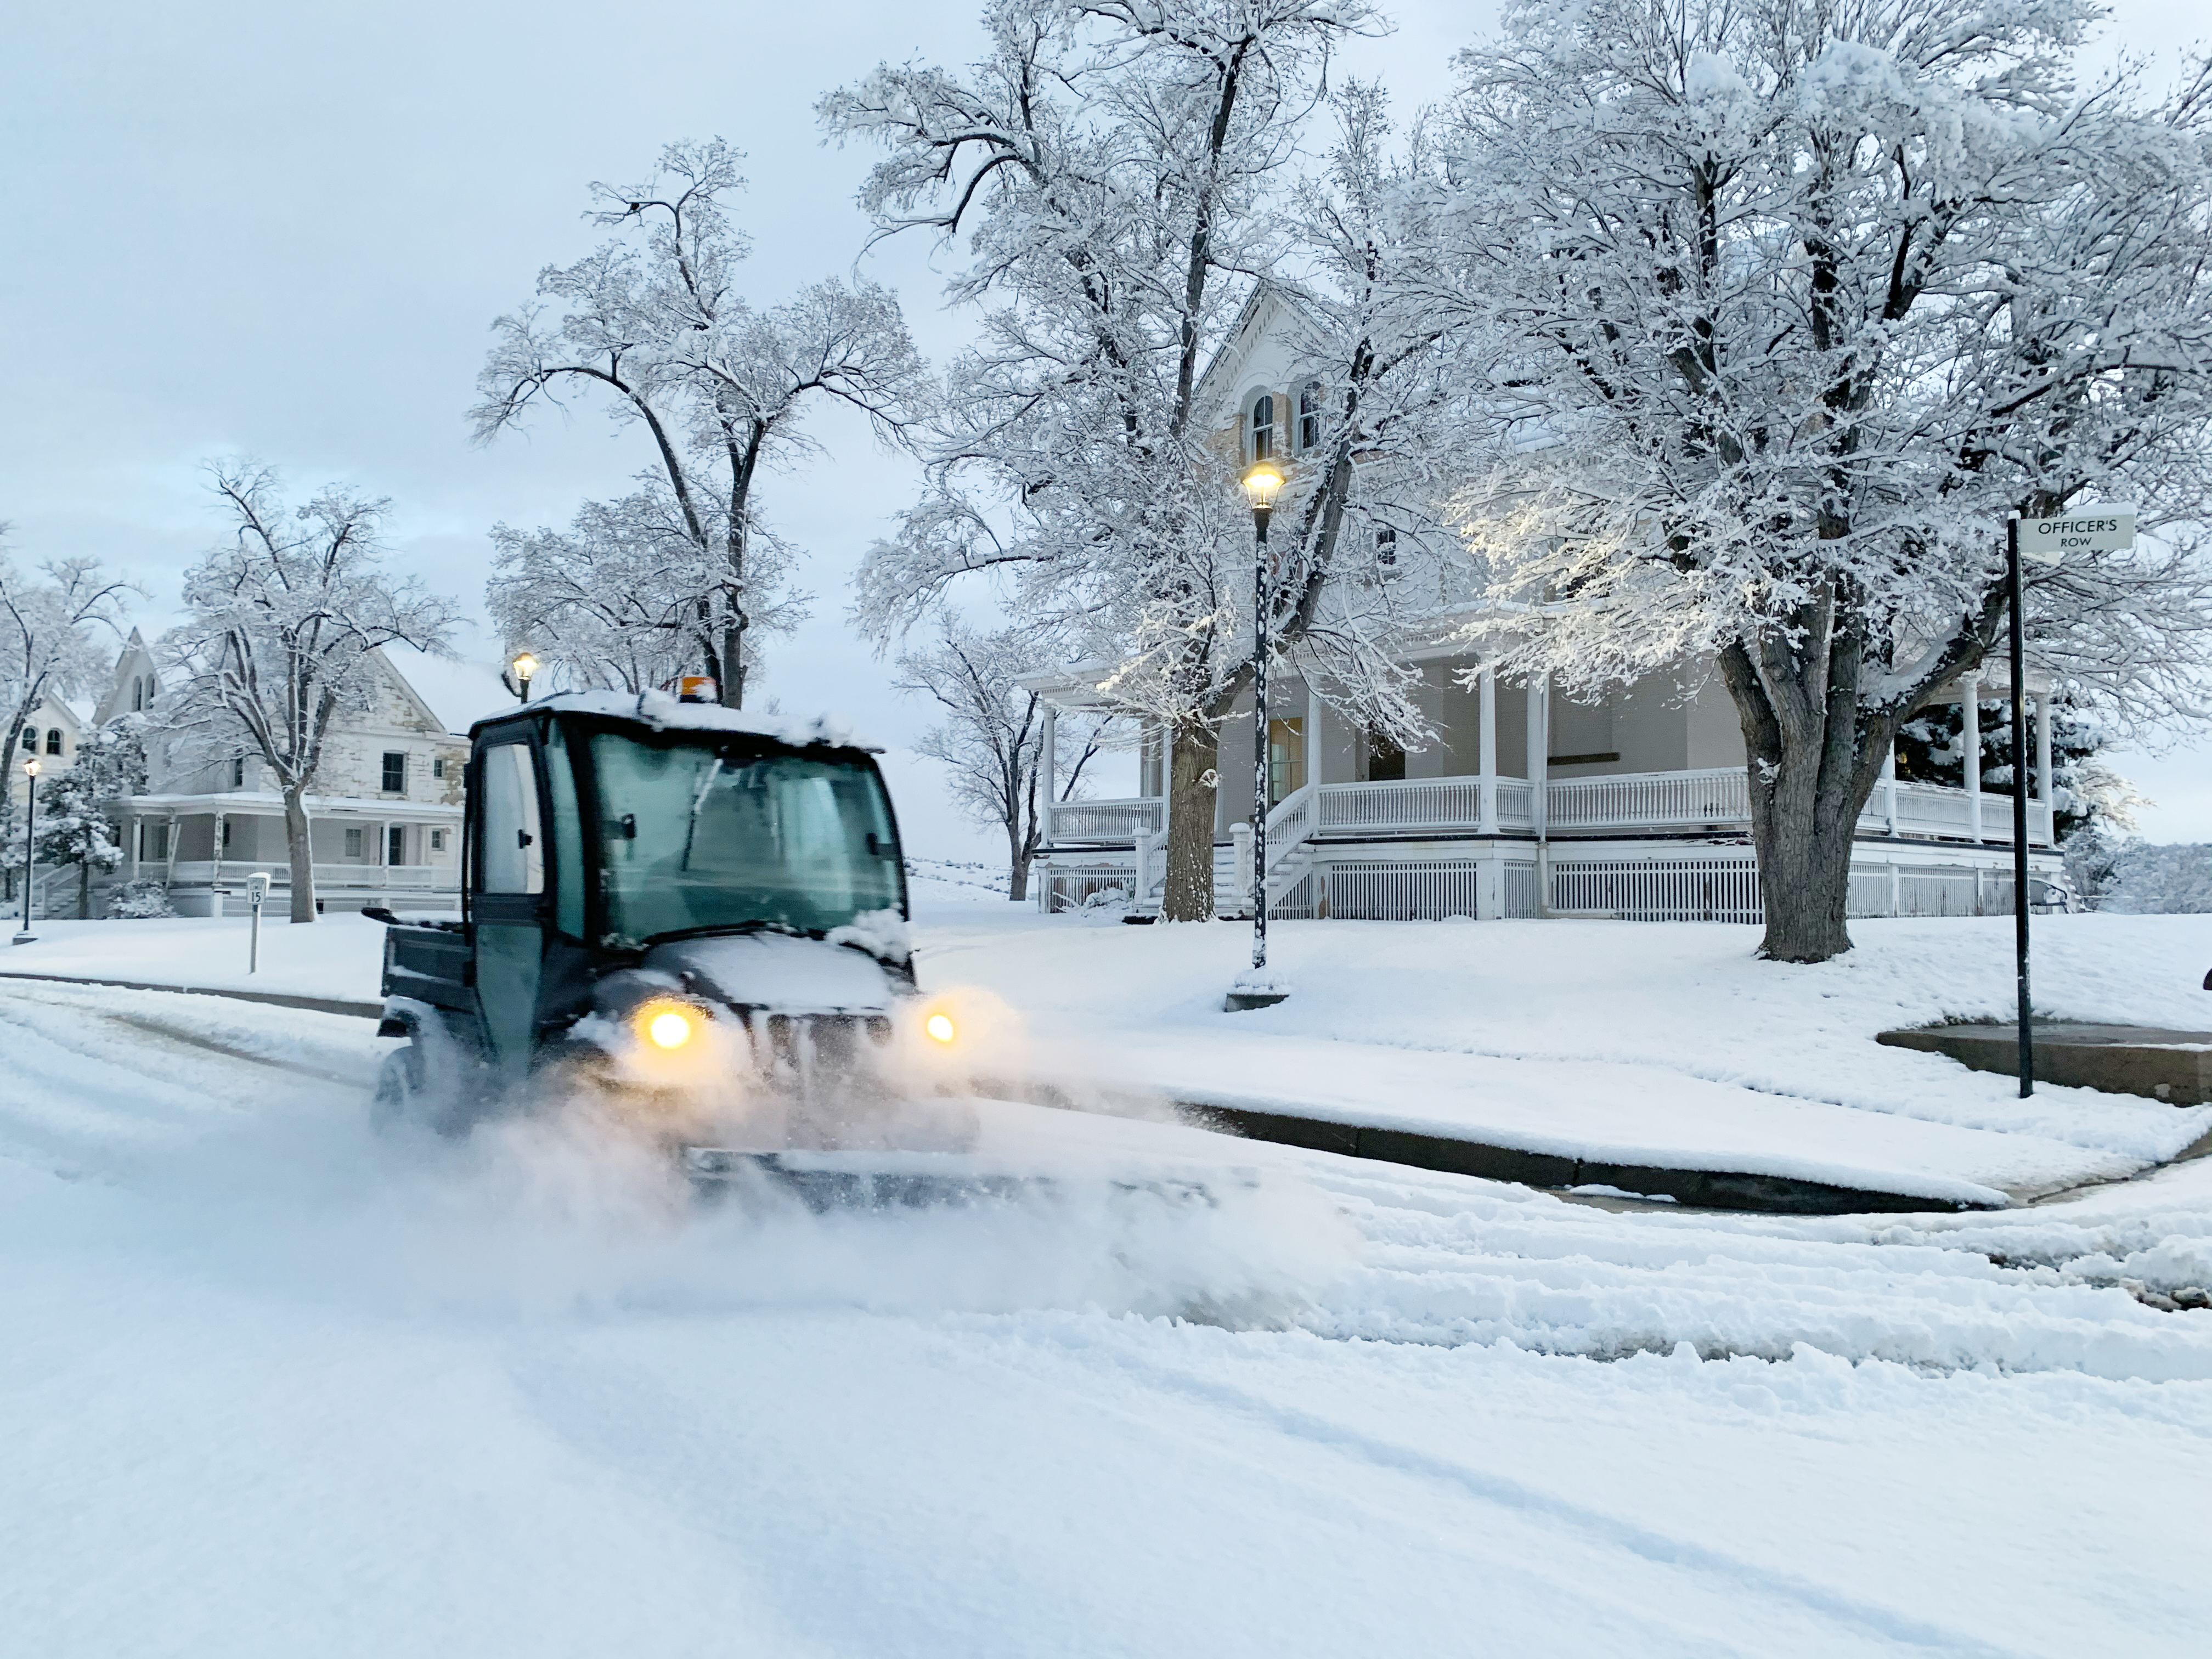 Unexpected Prescott area snowfall causes delays, minor crashes, outages